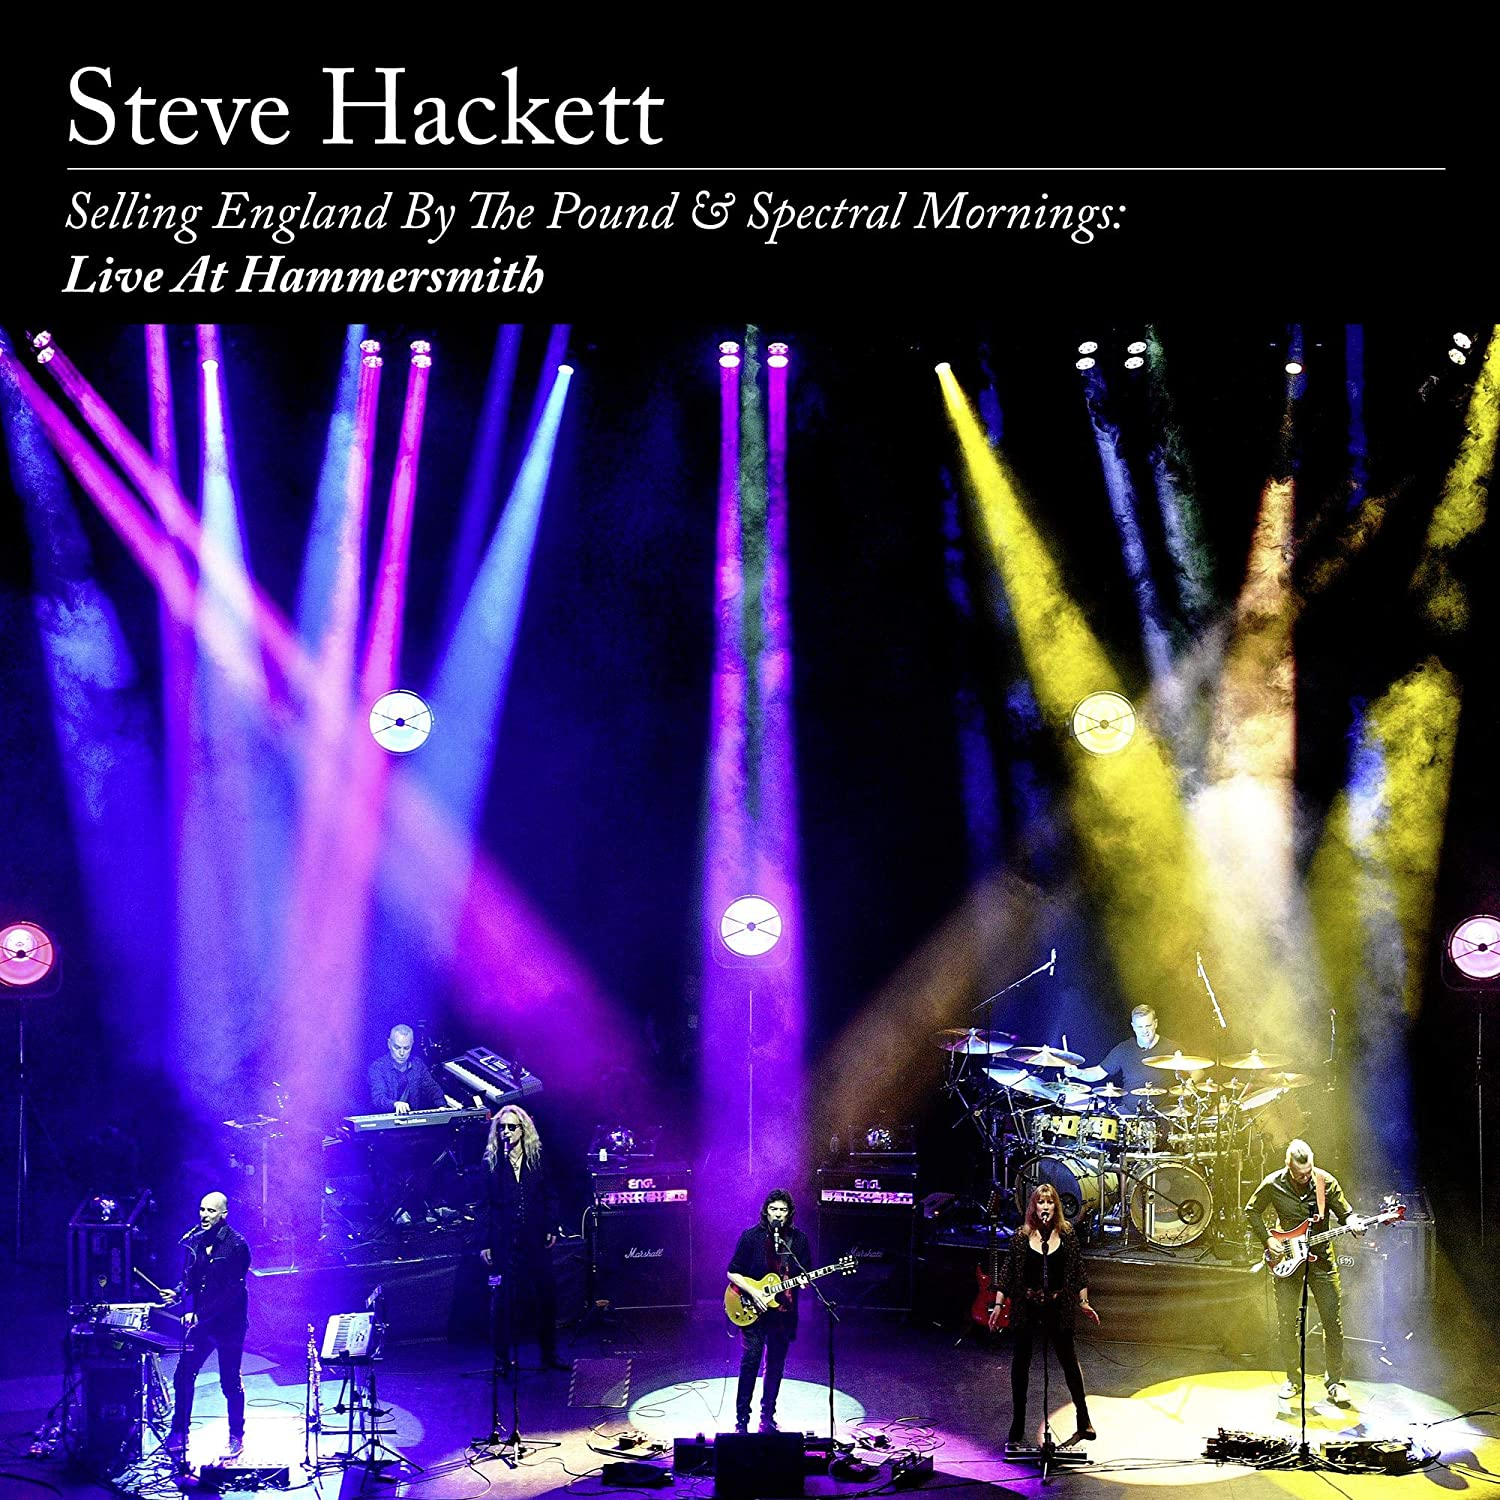 Steve Hackett - Selling England By The Pound & Spectral Mornings: Live at Hammersmith [Import]